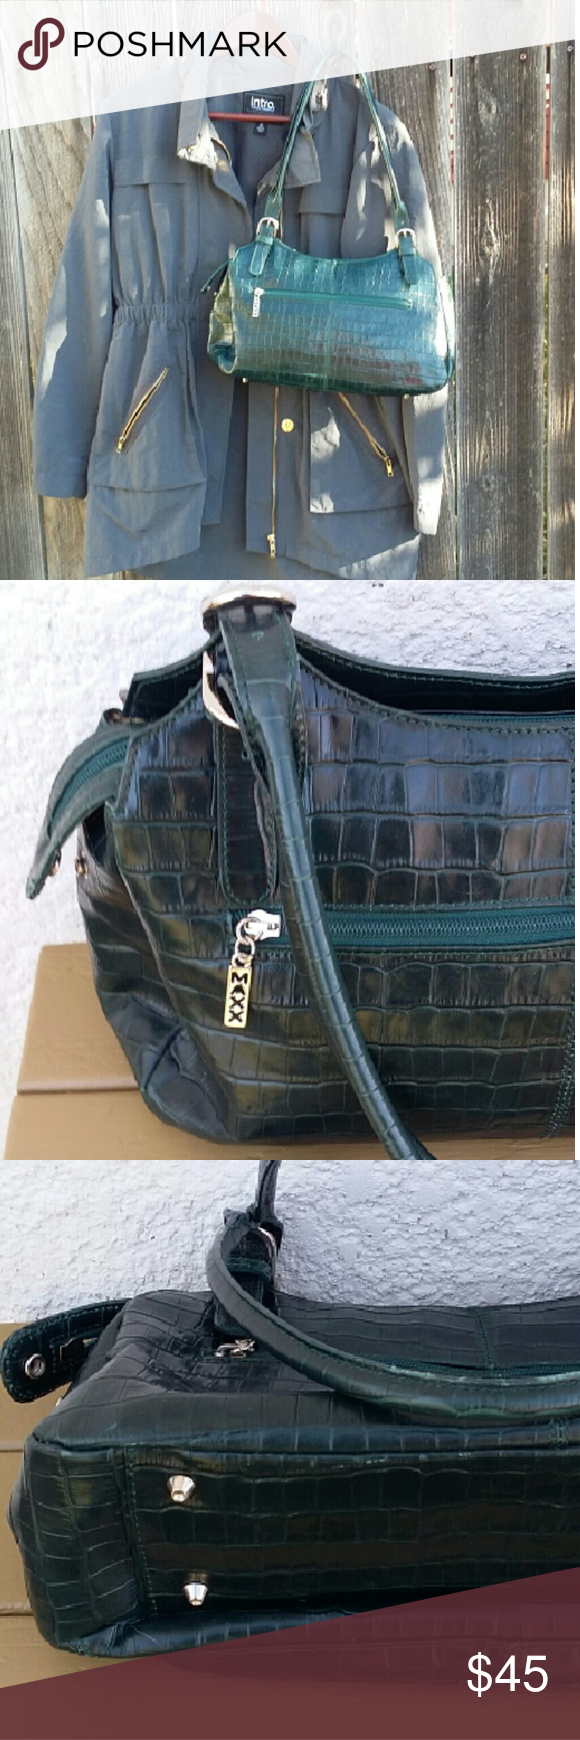 Pg 2. Lg MAXX NY green leather bag in exc cond Excellent condition inside and out. Lots of bells and whistles. MAXX NY is a major handbag manufacturer.   Add this lovely dark green leather bag to your handbag collection today. Bags